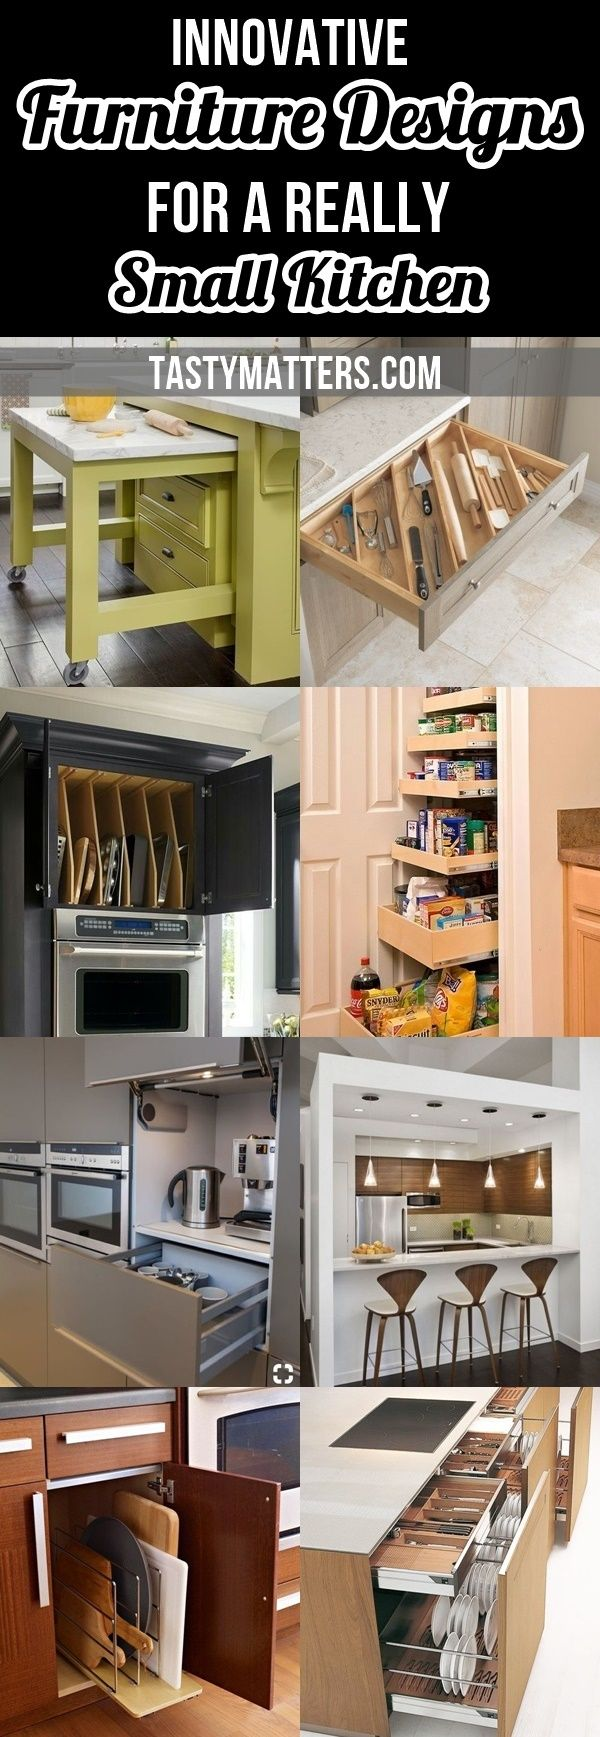 35 Innovative Furniture Designs For A Really Small Kitchen Tastymatters In 2020 Kitchen Design Small Small Kitchen Innovative Furniture